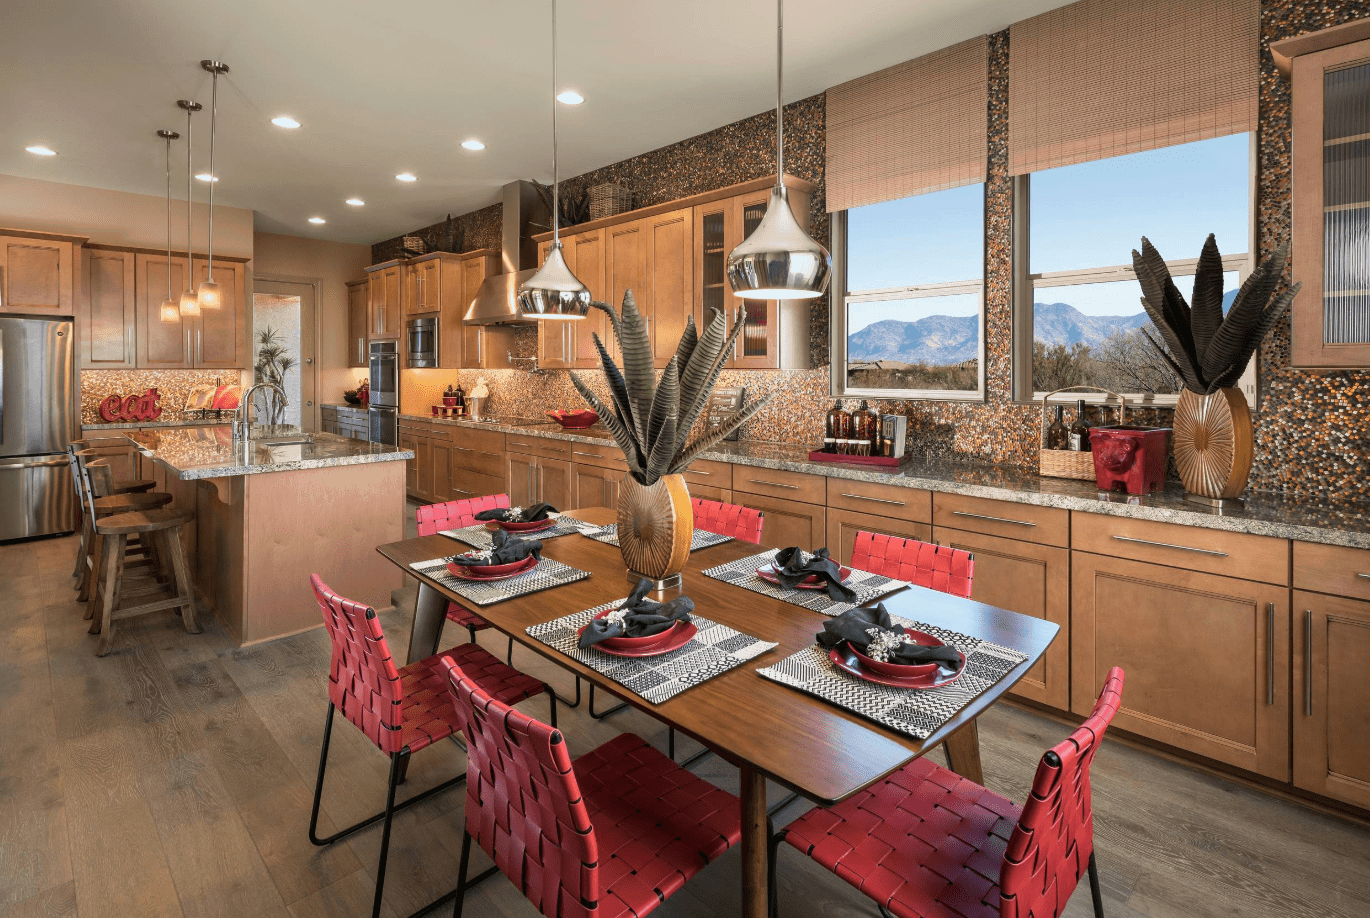 Huge southwestern kitchen with lengthy marble countertop and backsplash that matches the breakfast island. It has glass windows overlooking the spectacular mountain view.